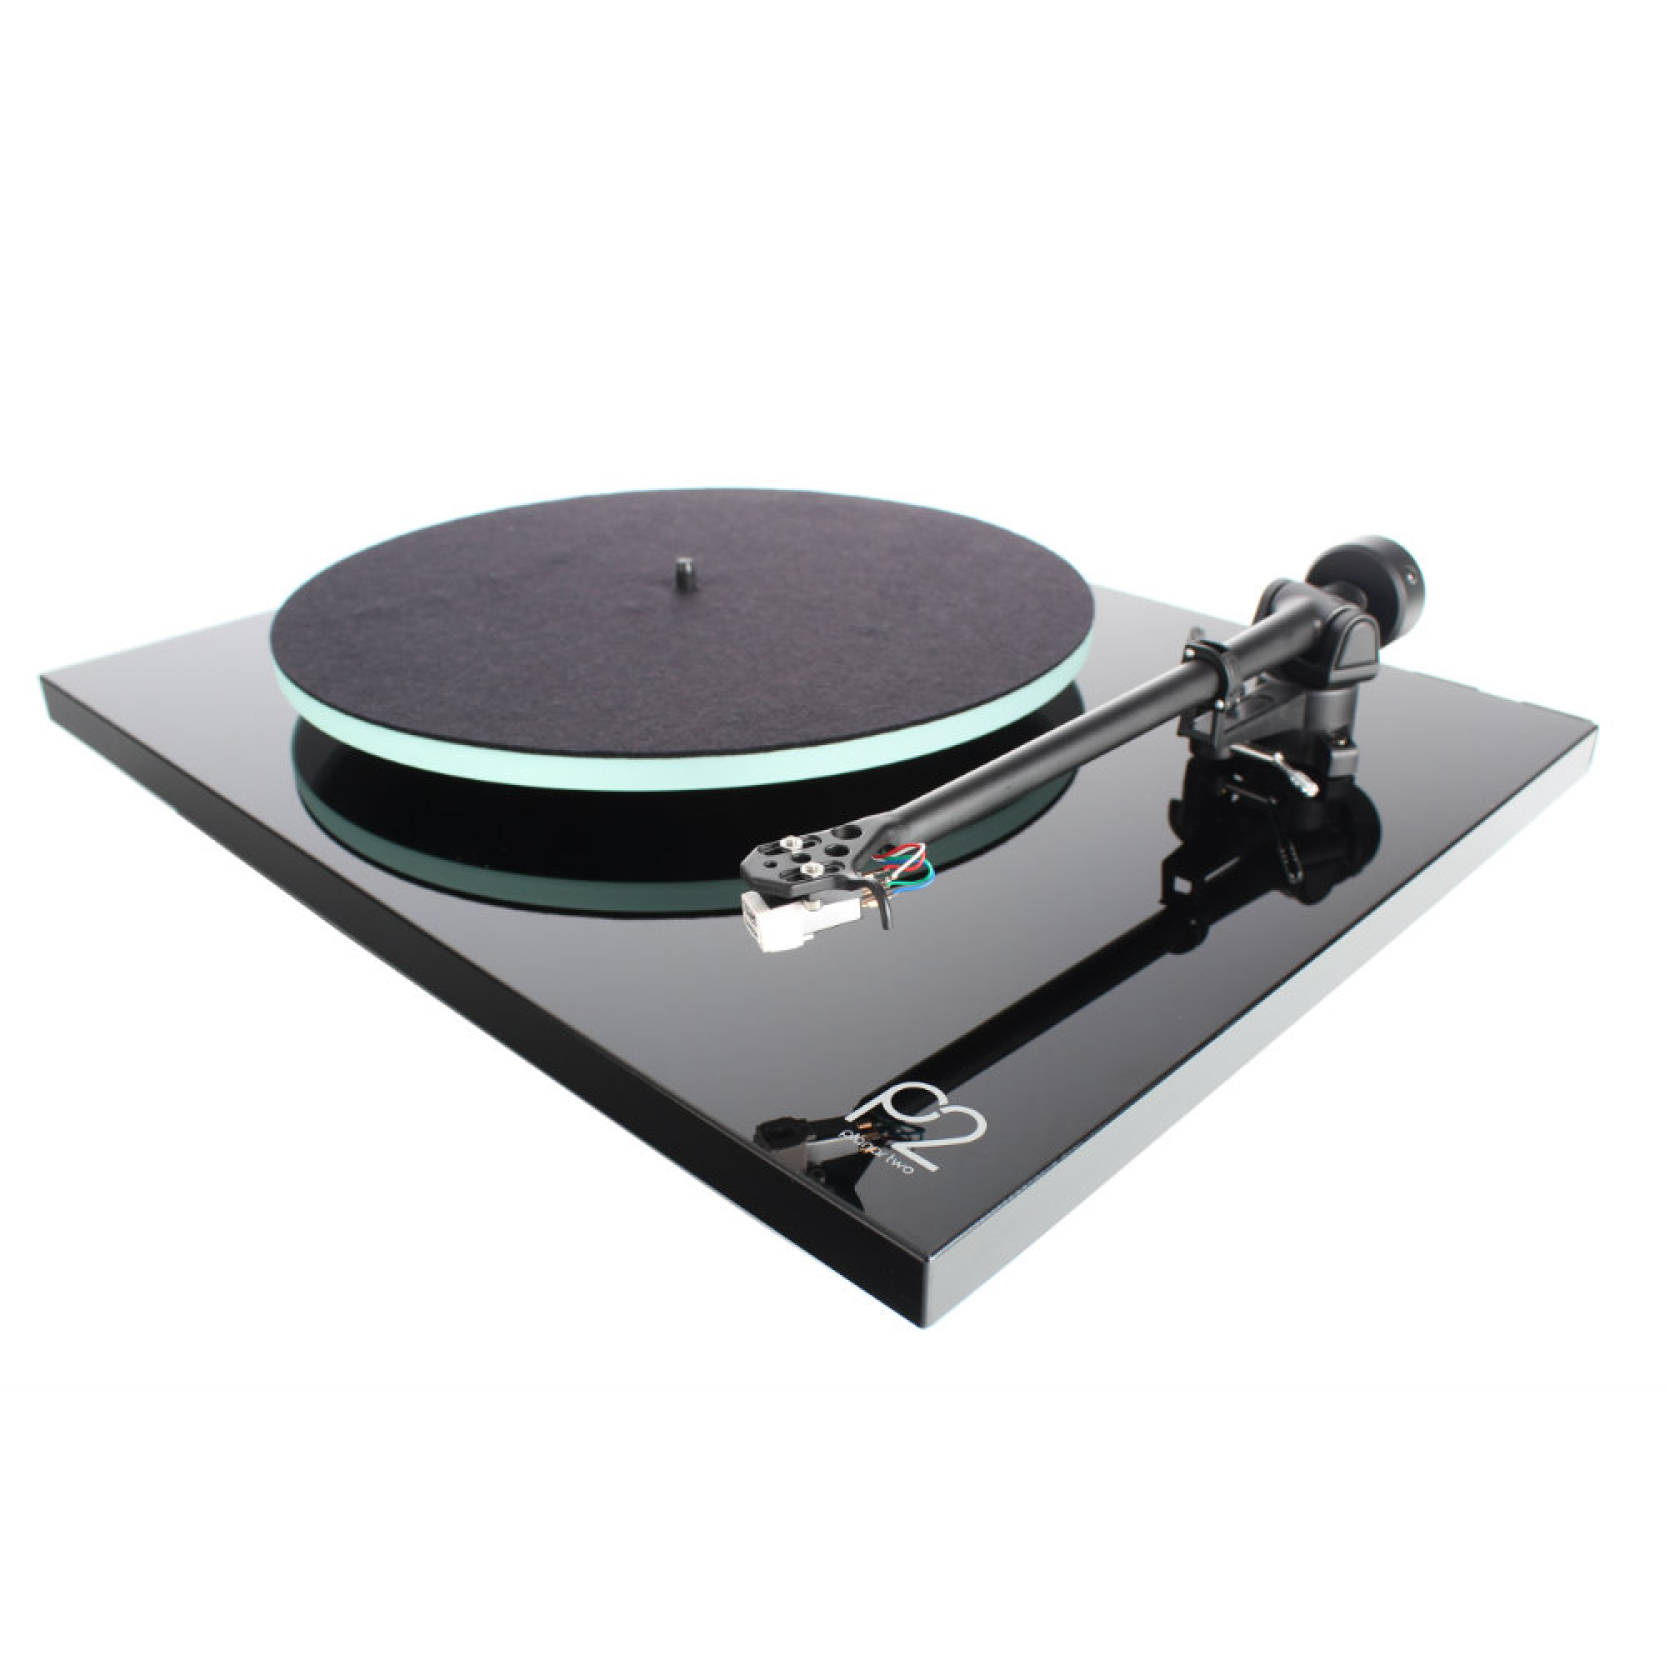 Rega - Planar 2 Turntable